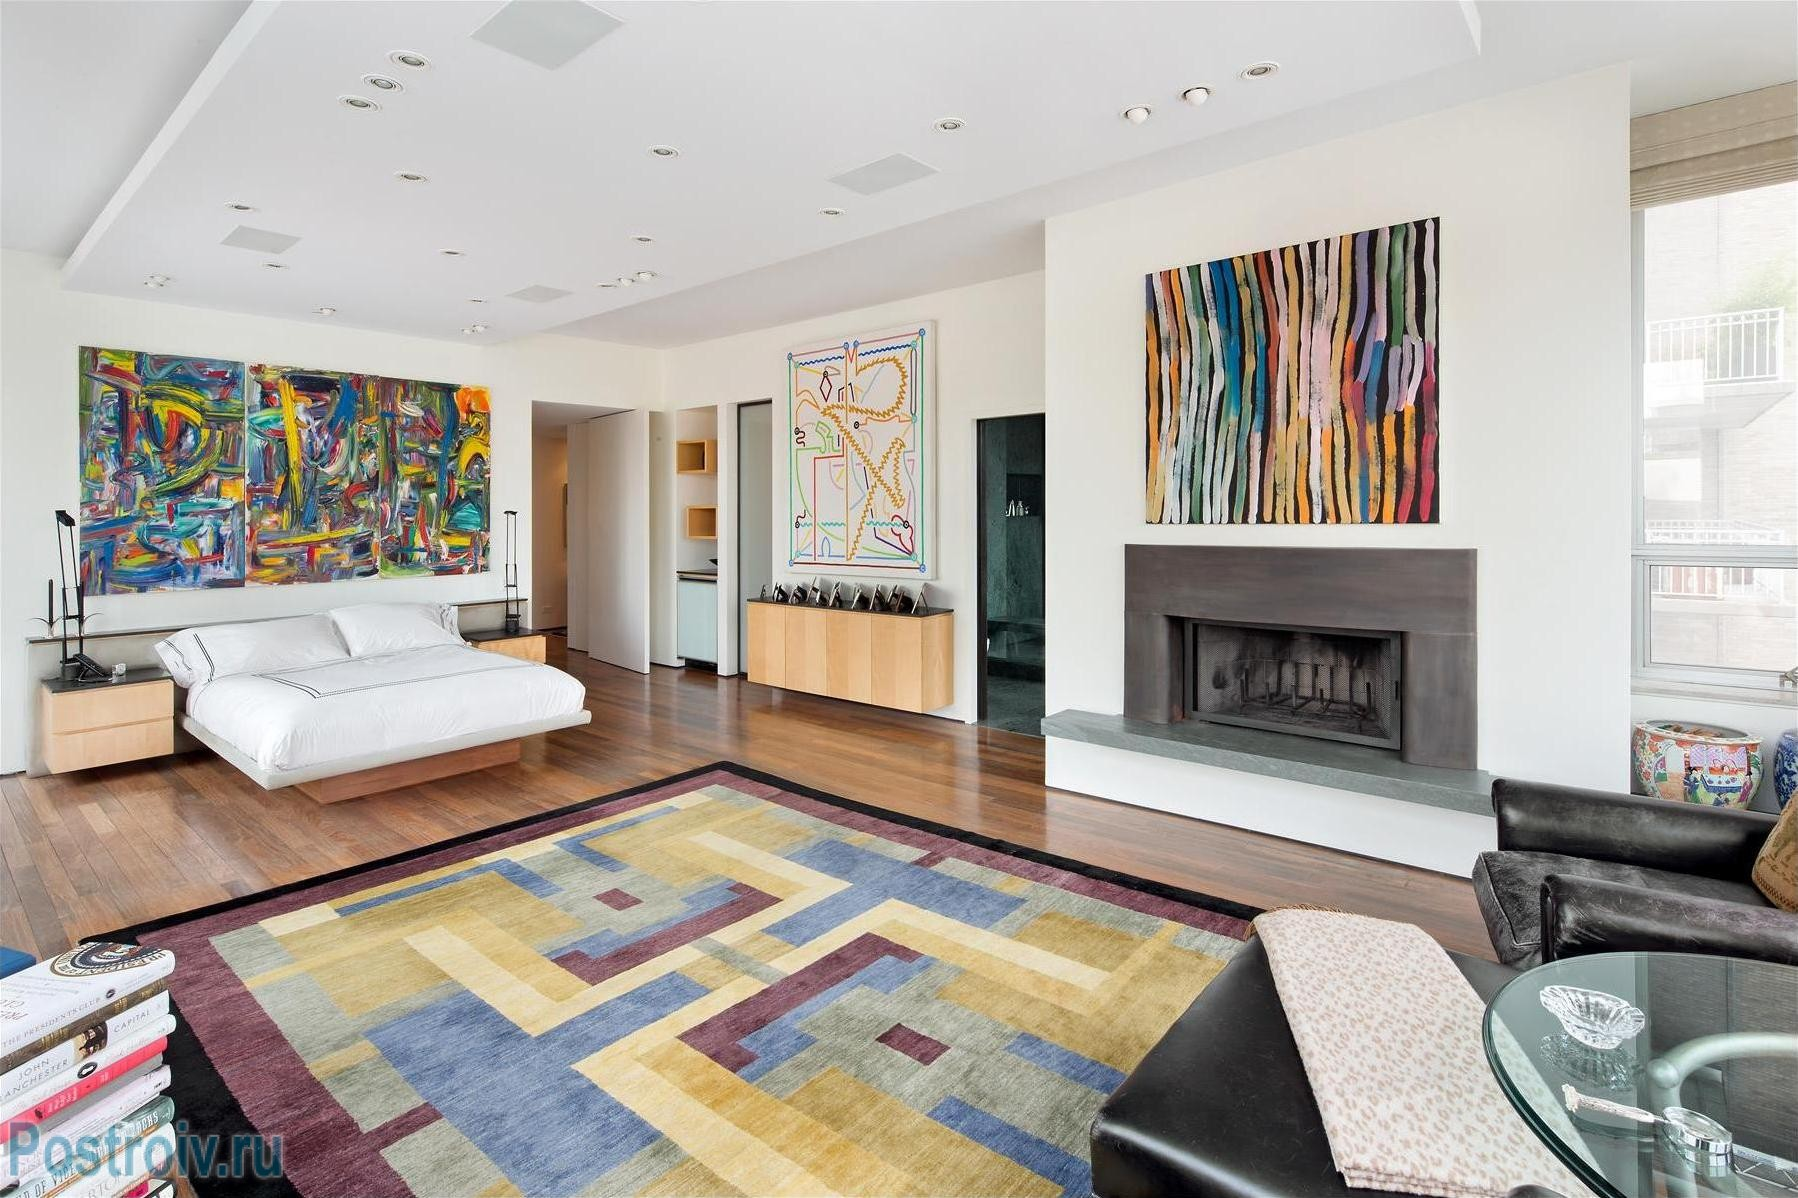 bedroom-inspiration-livingroom-attractive-living-room-wall-decor-with-colorful-fur-rugs-and-white-sofas-also-fake-wooden-flooring-plus-modern-fireplace-and-beautiful-painting-at-white-walls-color-indo